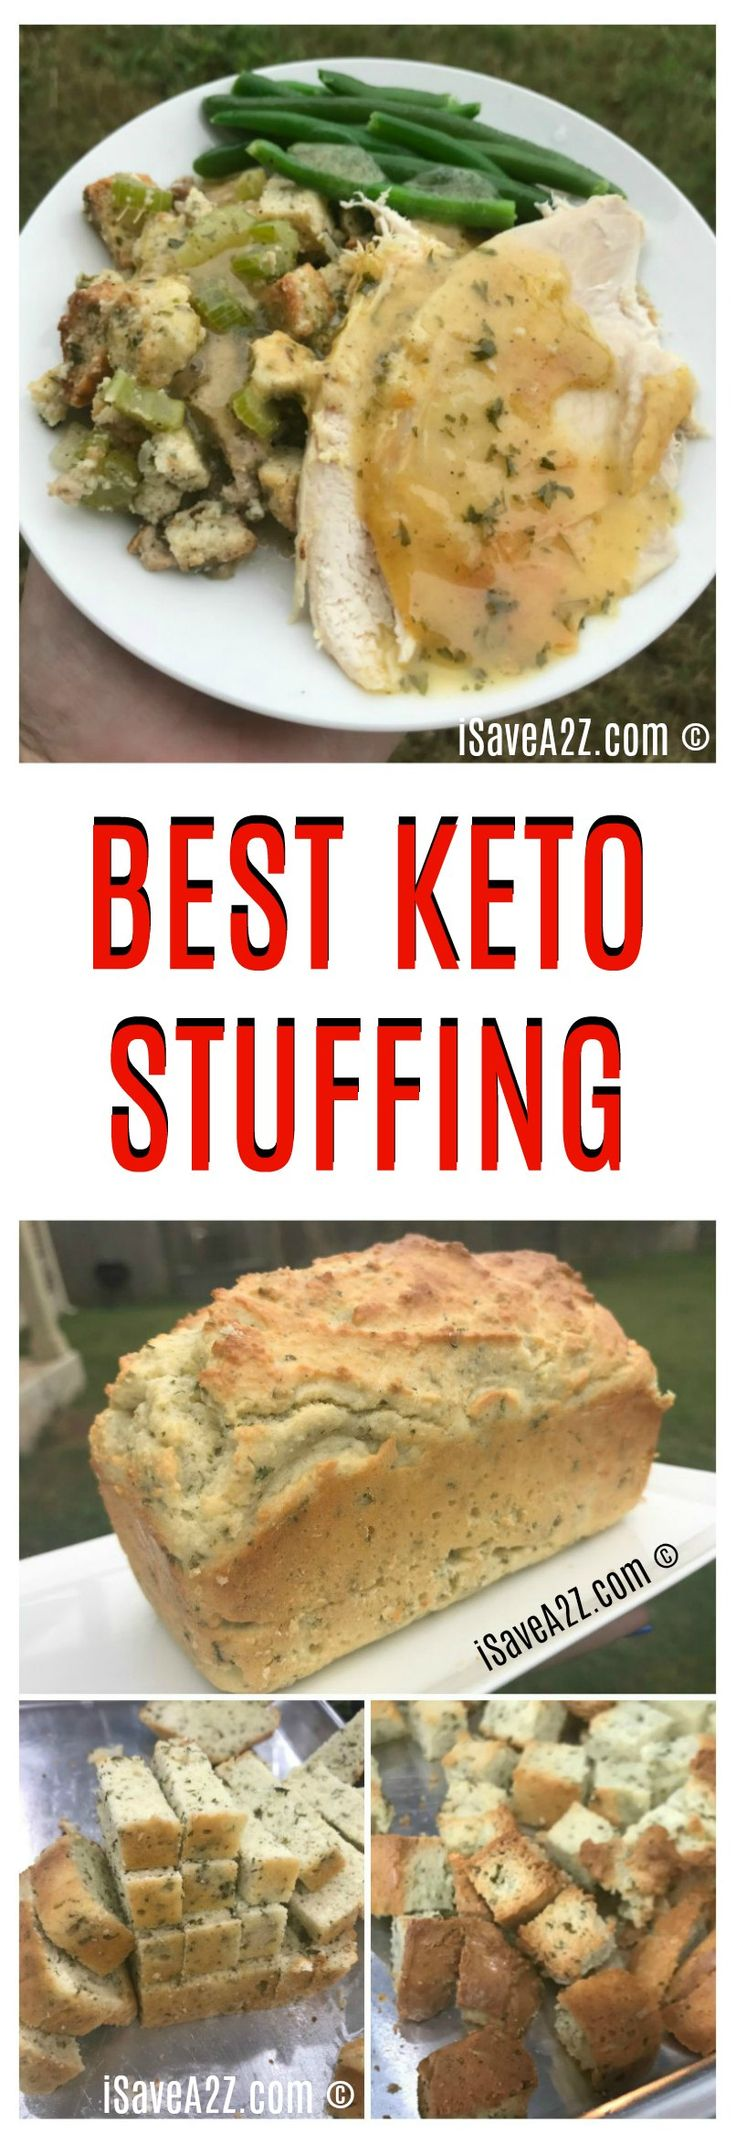 Best Keto Stuffing Recipe that's made with a Keto Friendly Savory Bread!!  OMG!